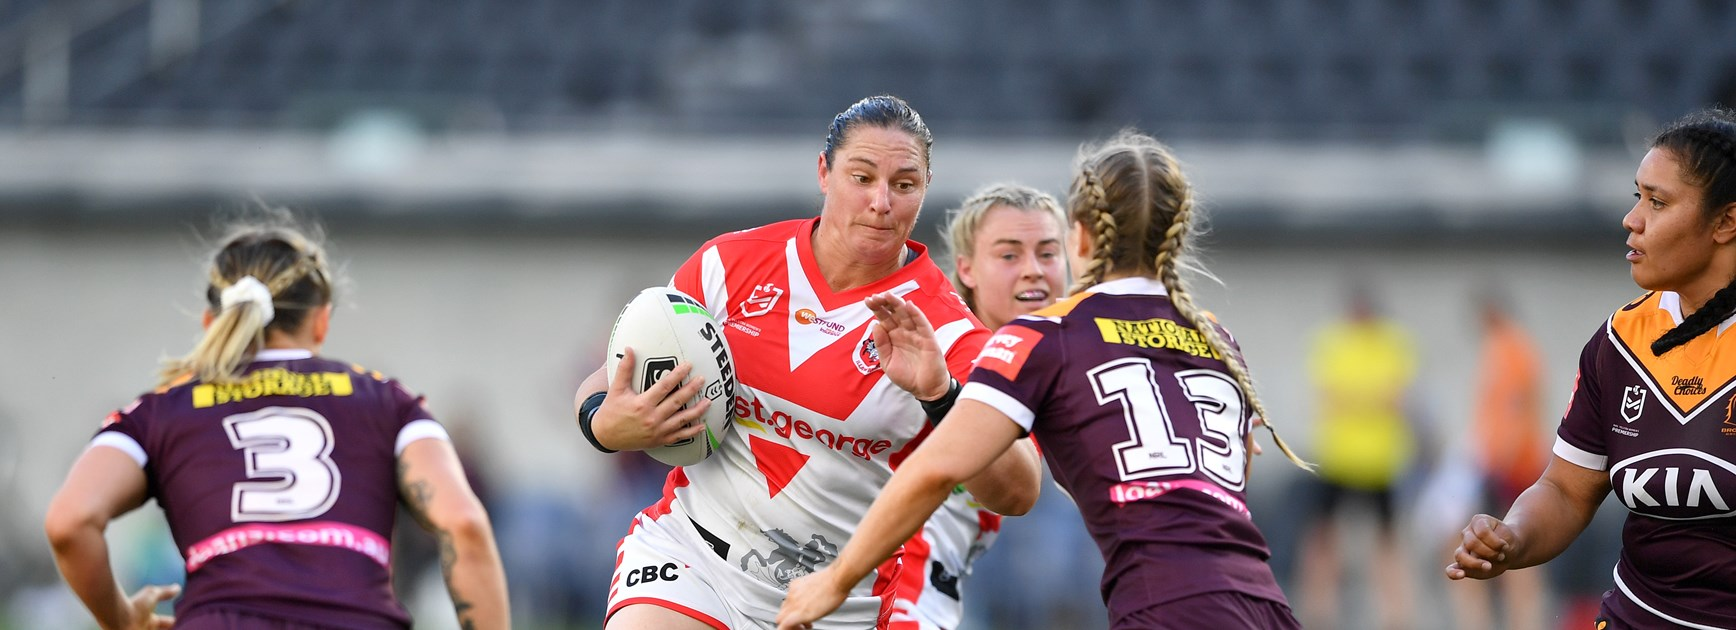 Steph Hancock in action for the Dragons.